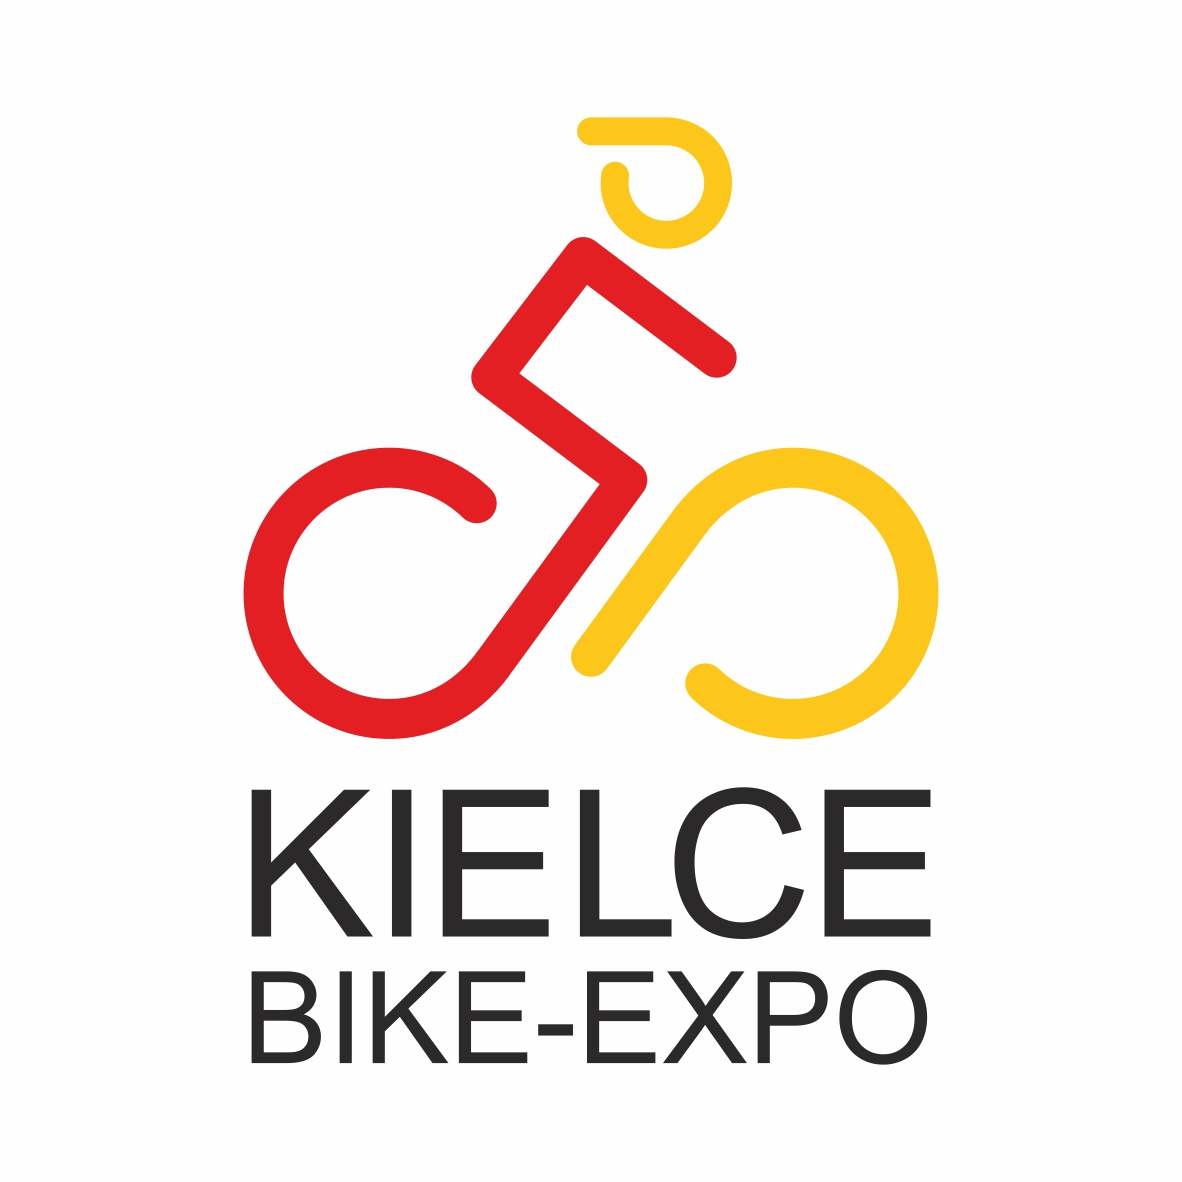 kielce-bike-expo-logo